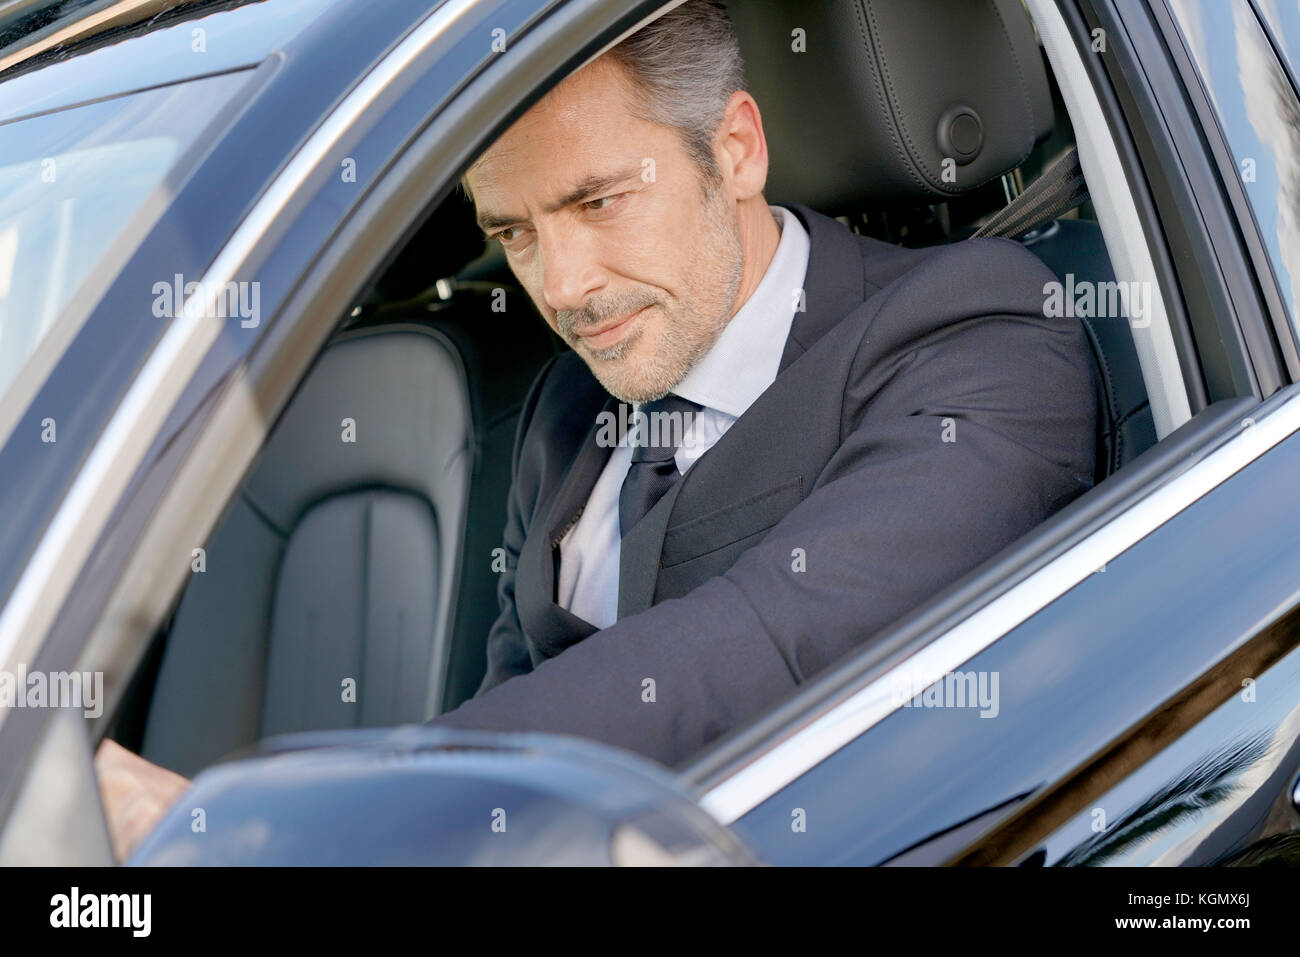 Private driver inside car waiting for client - Stock Image